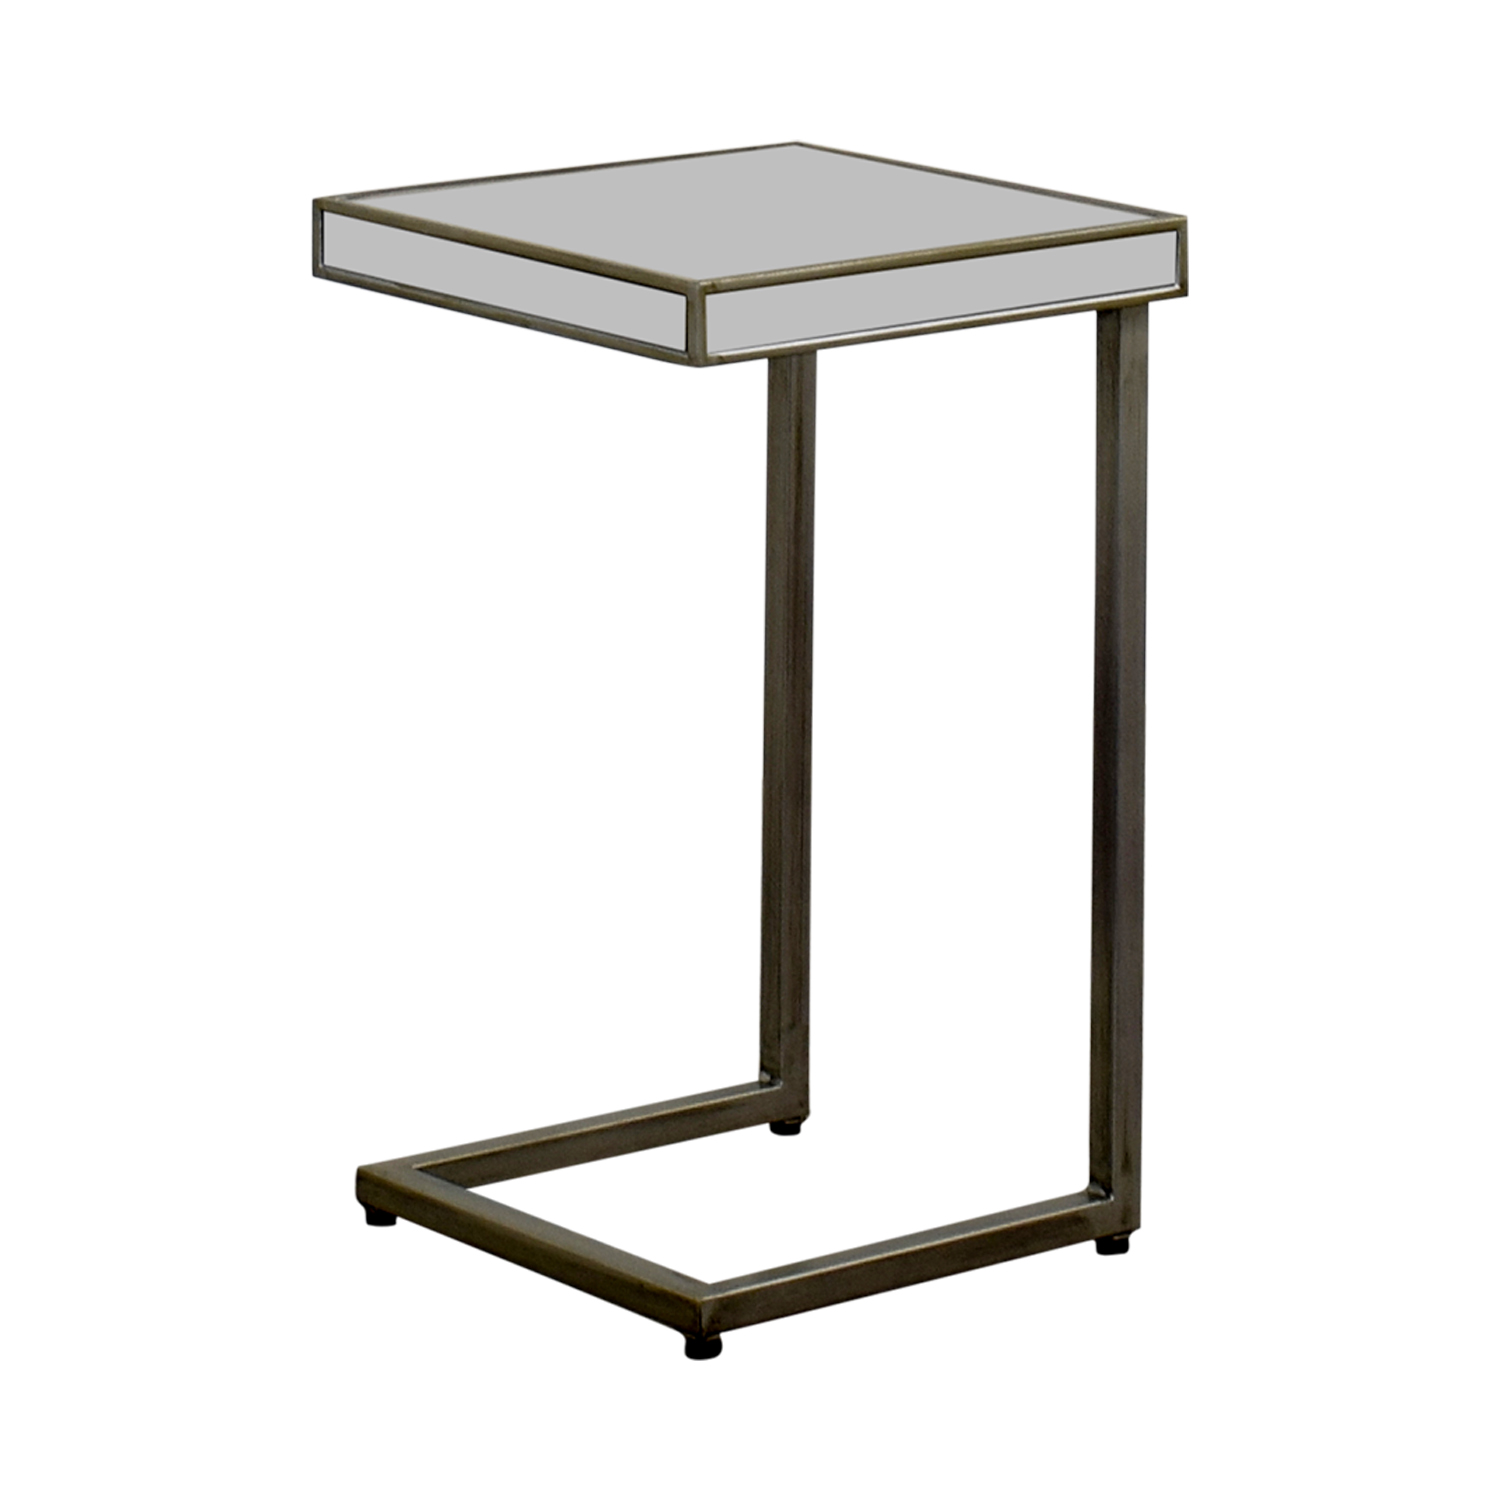 Pier 1 Imports Pier 1 Imports Hayworth Silver C-Table in Mirror discount